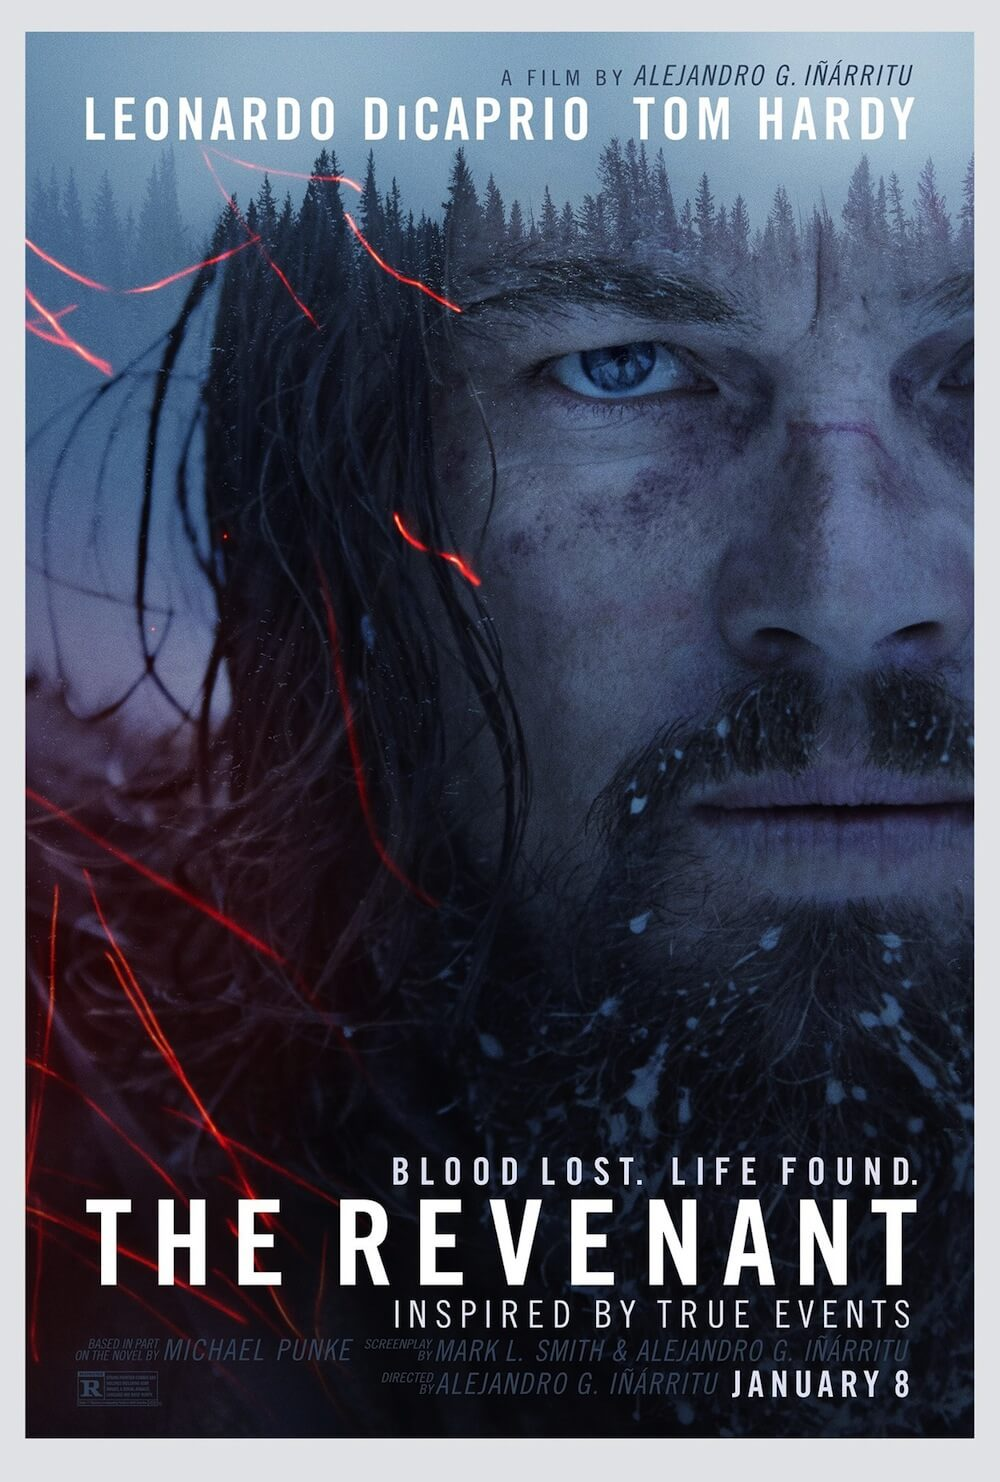 THE REVENANT official teaser poster and two character posters have surfaced